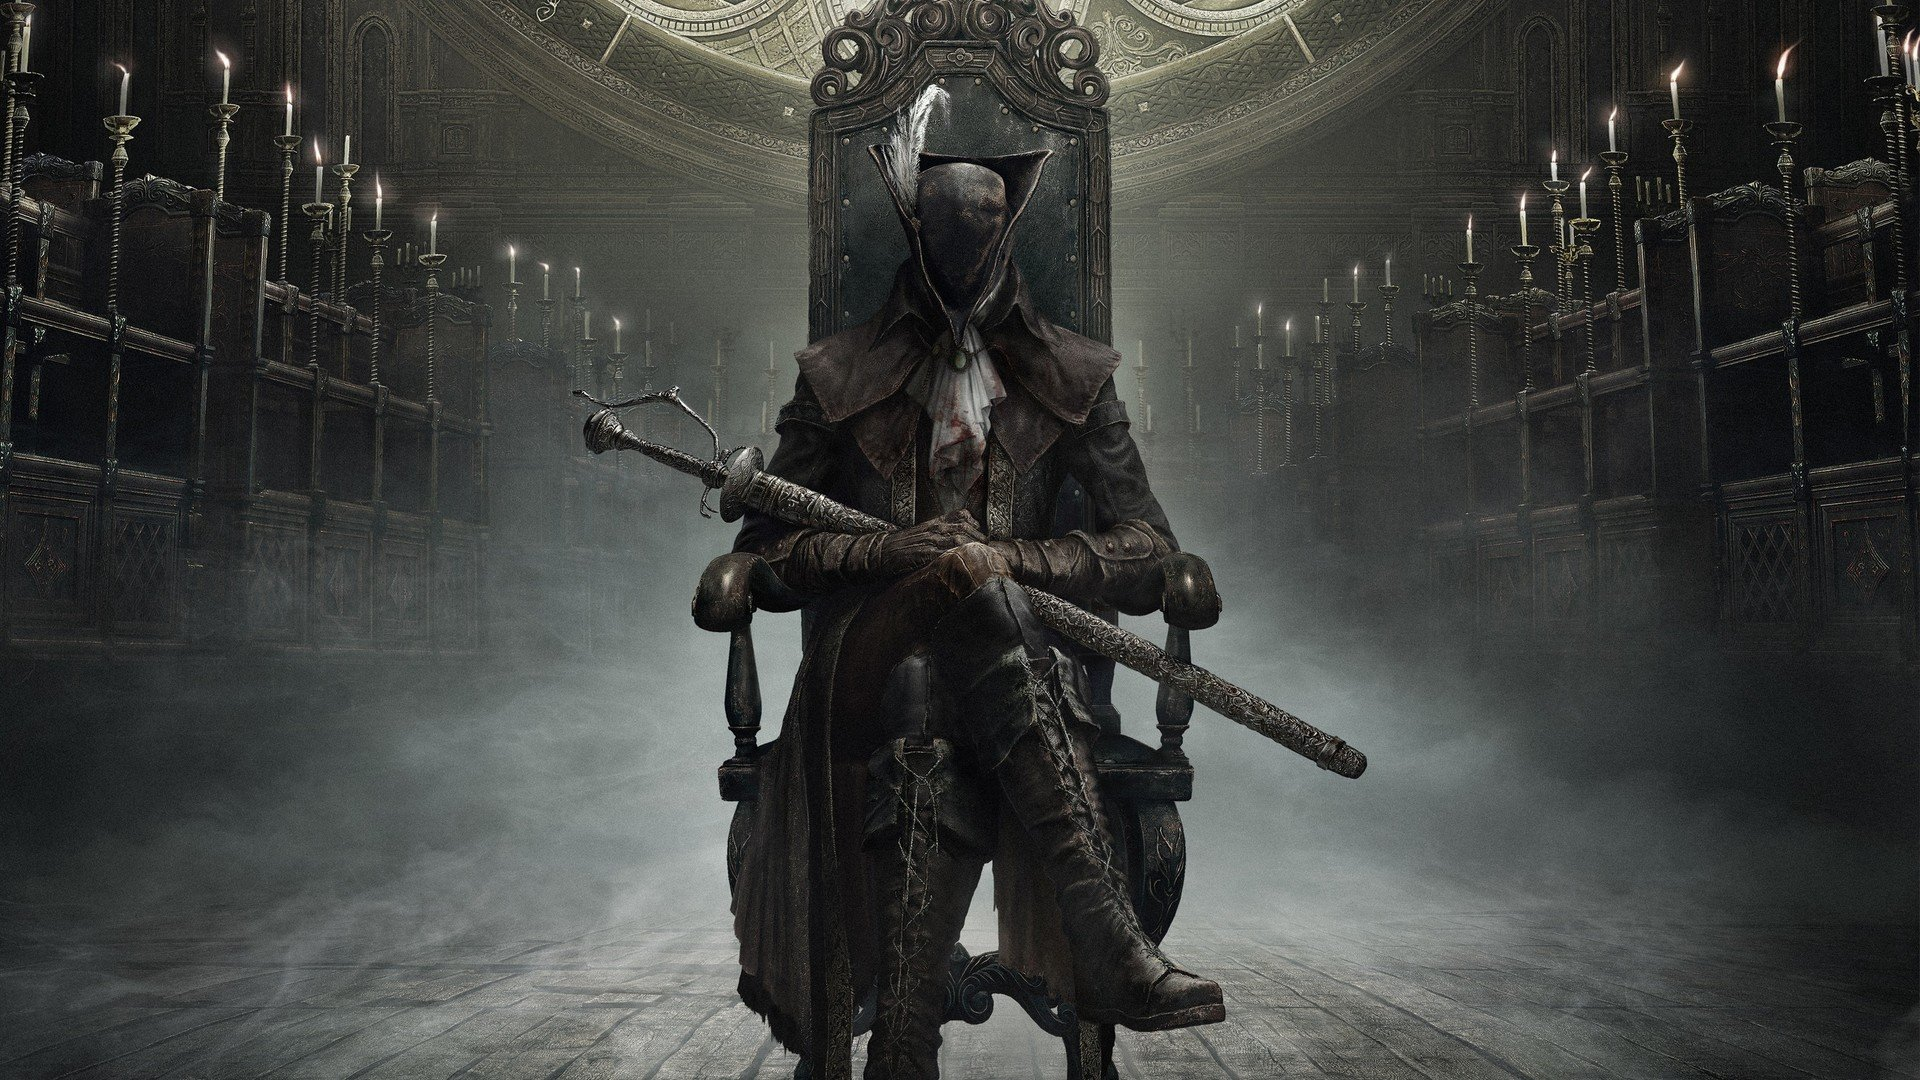 Bloodborne and Dark Souls Developer From Software has Two